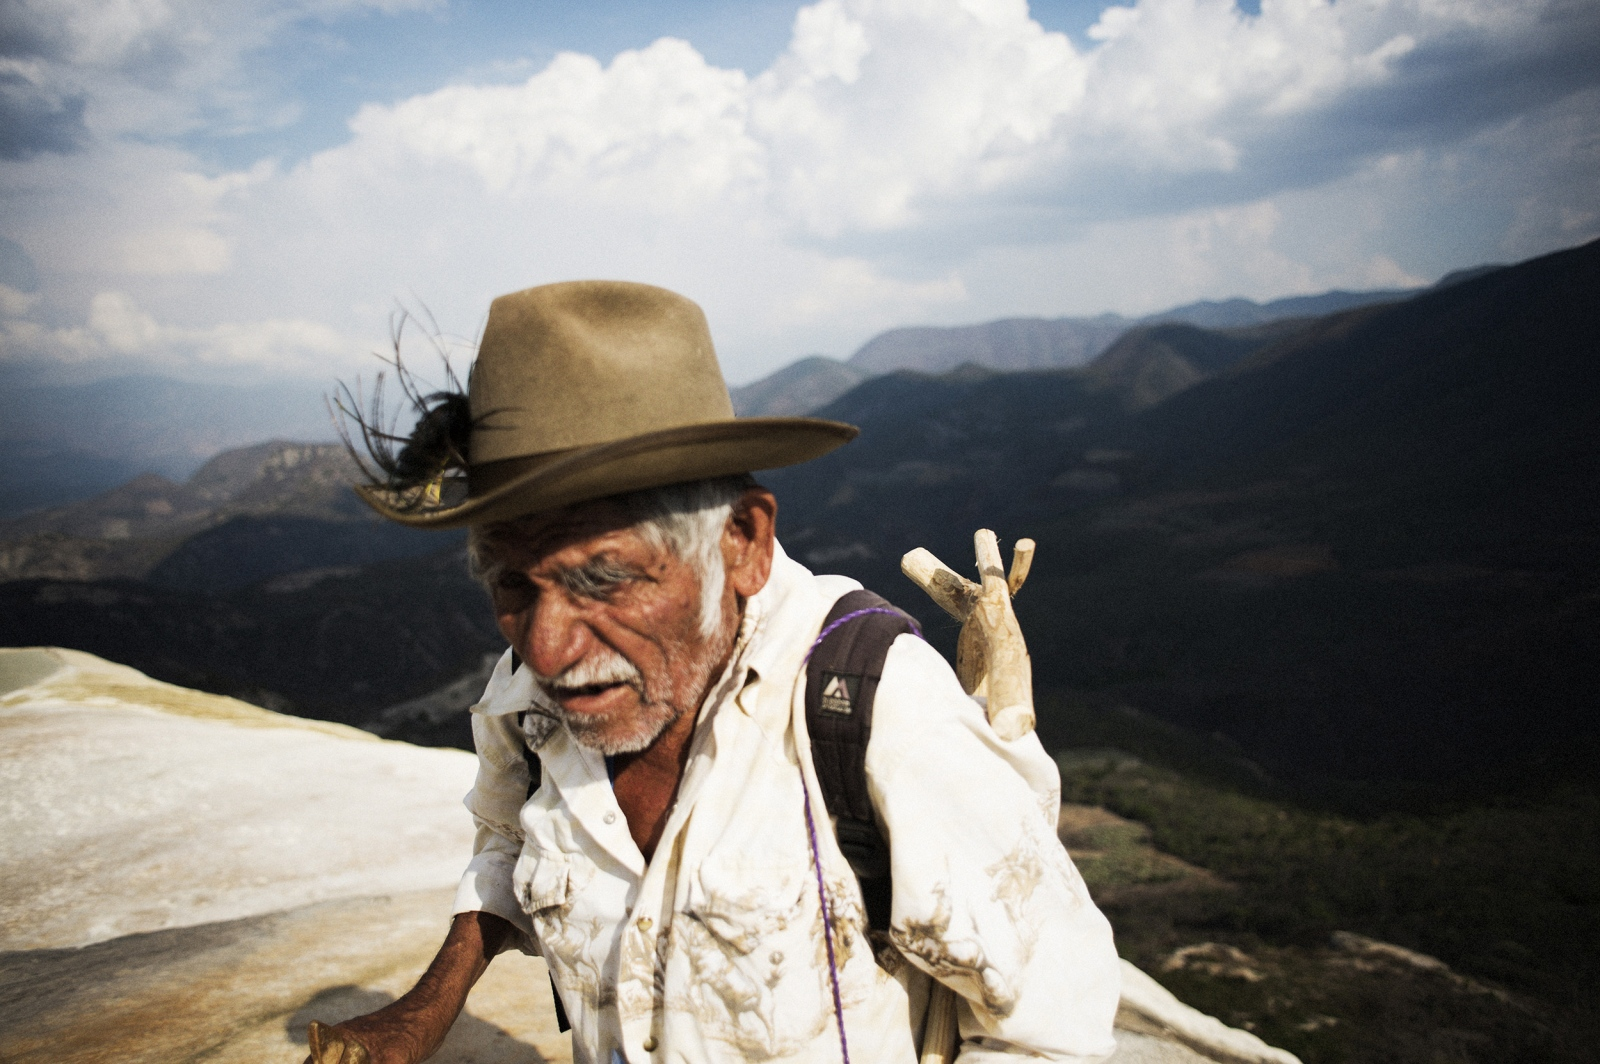 A guide in the Oaxaca hills hikes through the mountains while attempting to locate wild agave.